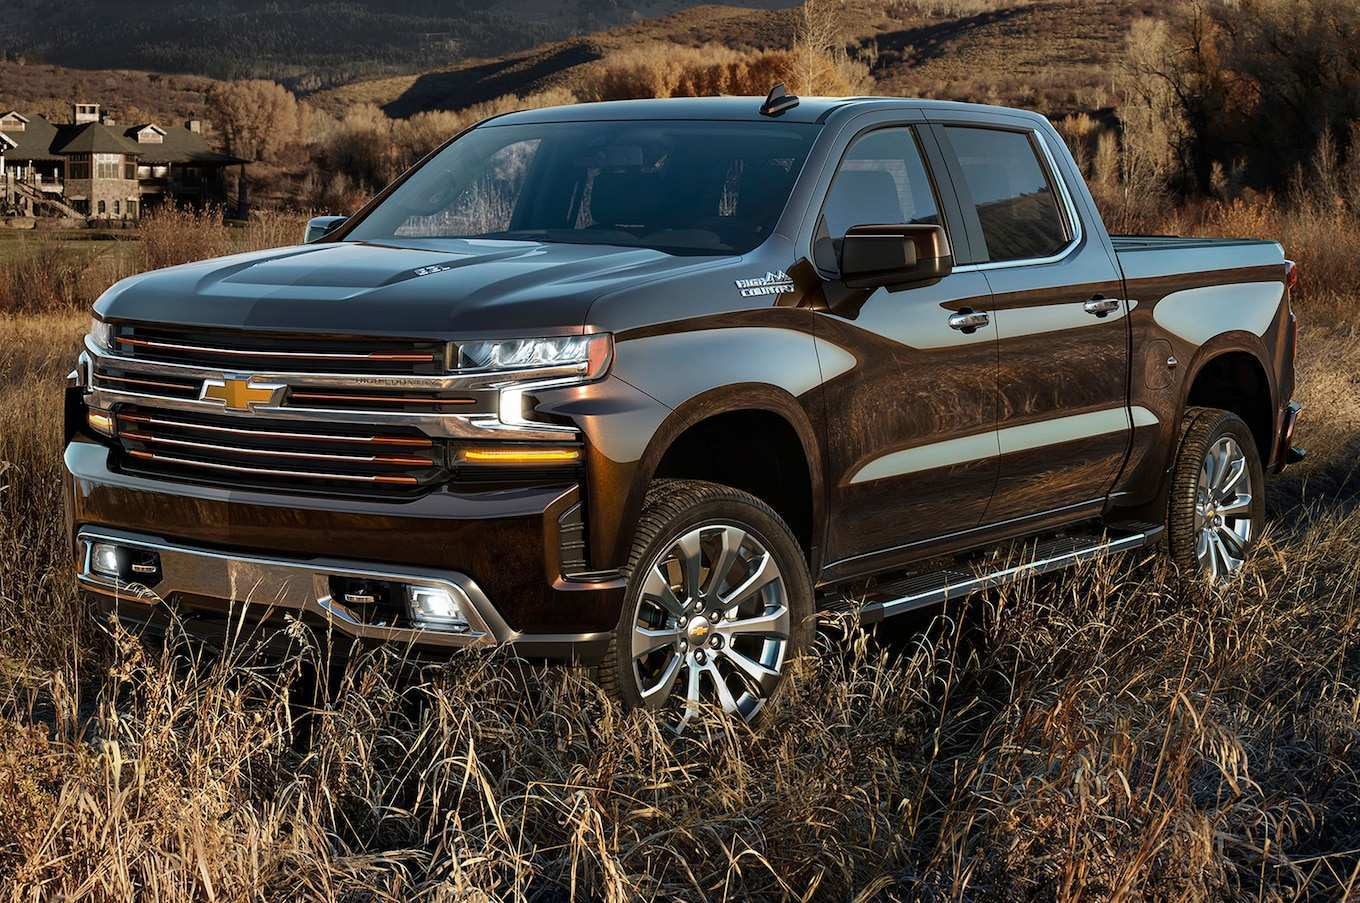 36 All New 2019 Chevrolet Pickup Review for 2019 Chevrolet Pickup